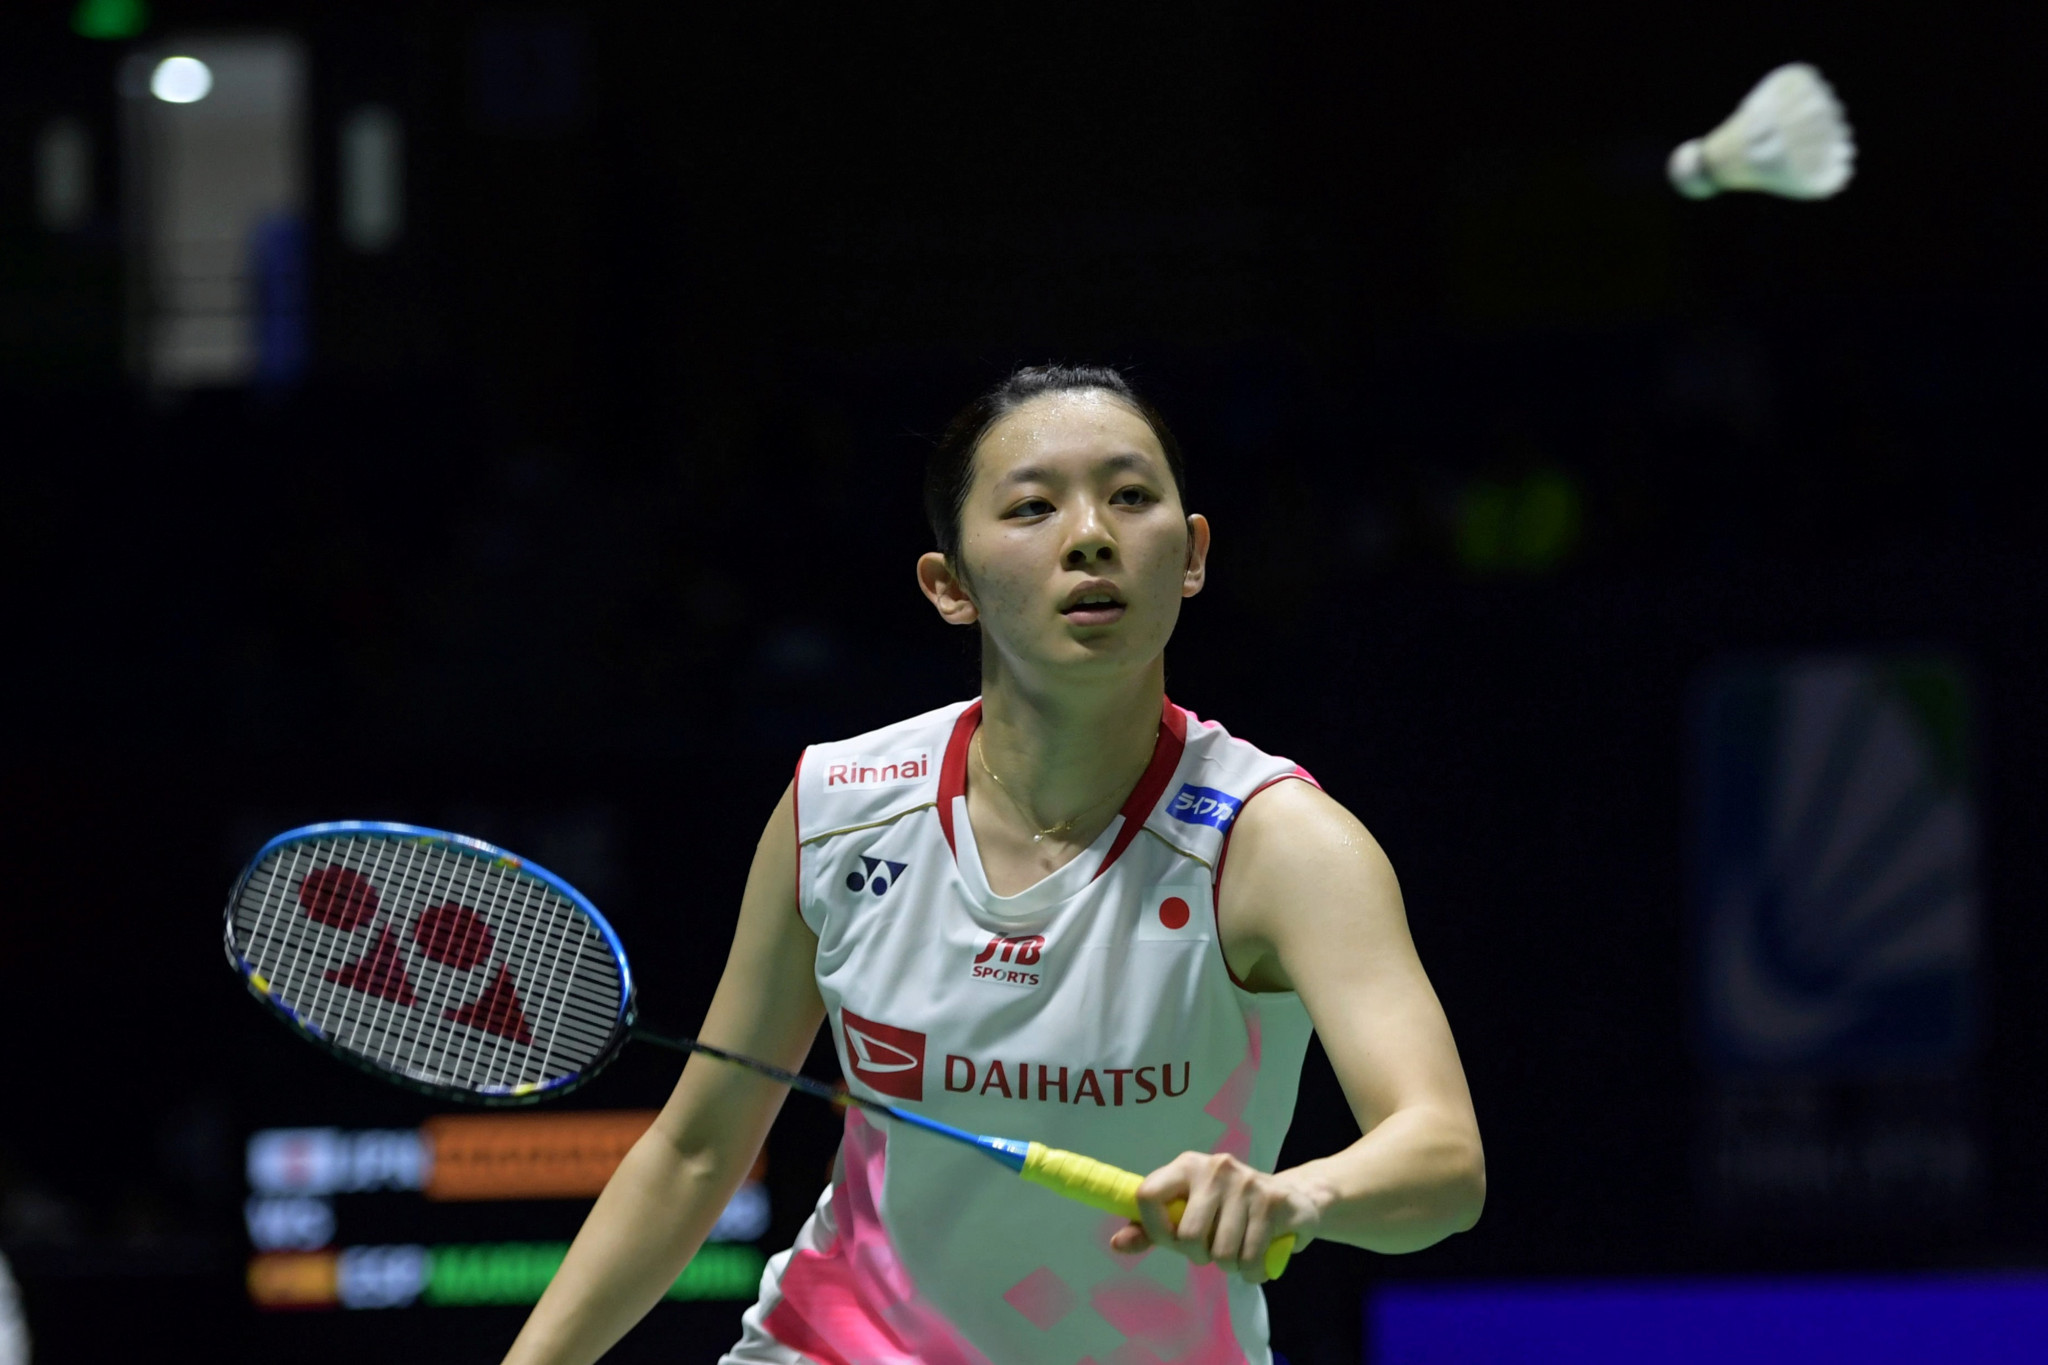 Sayaka Takahashi scored the decisive point for Japan against Indonesia in the women's quarter-finals ©Getty Images